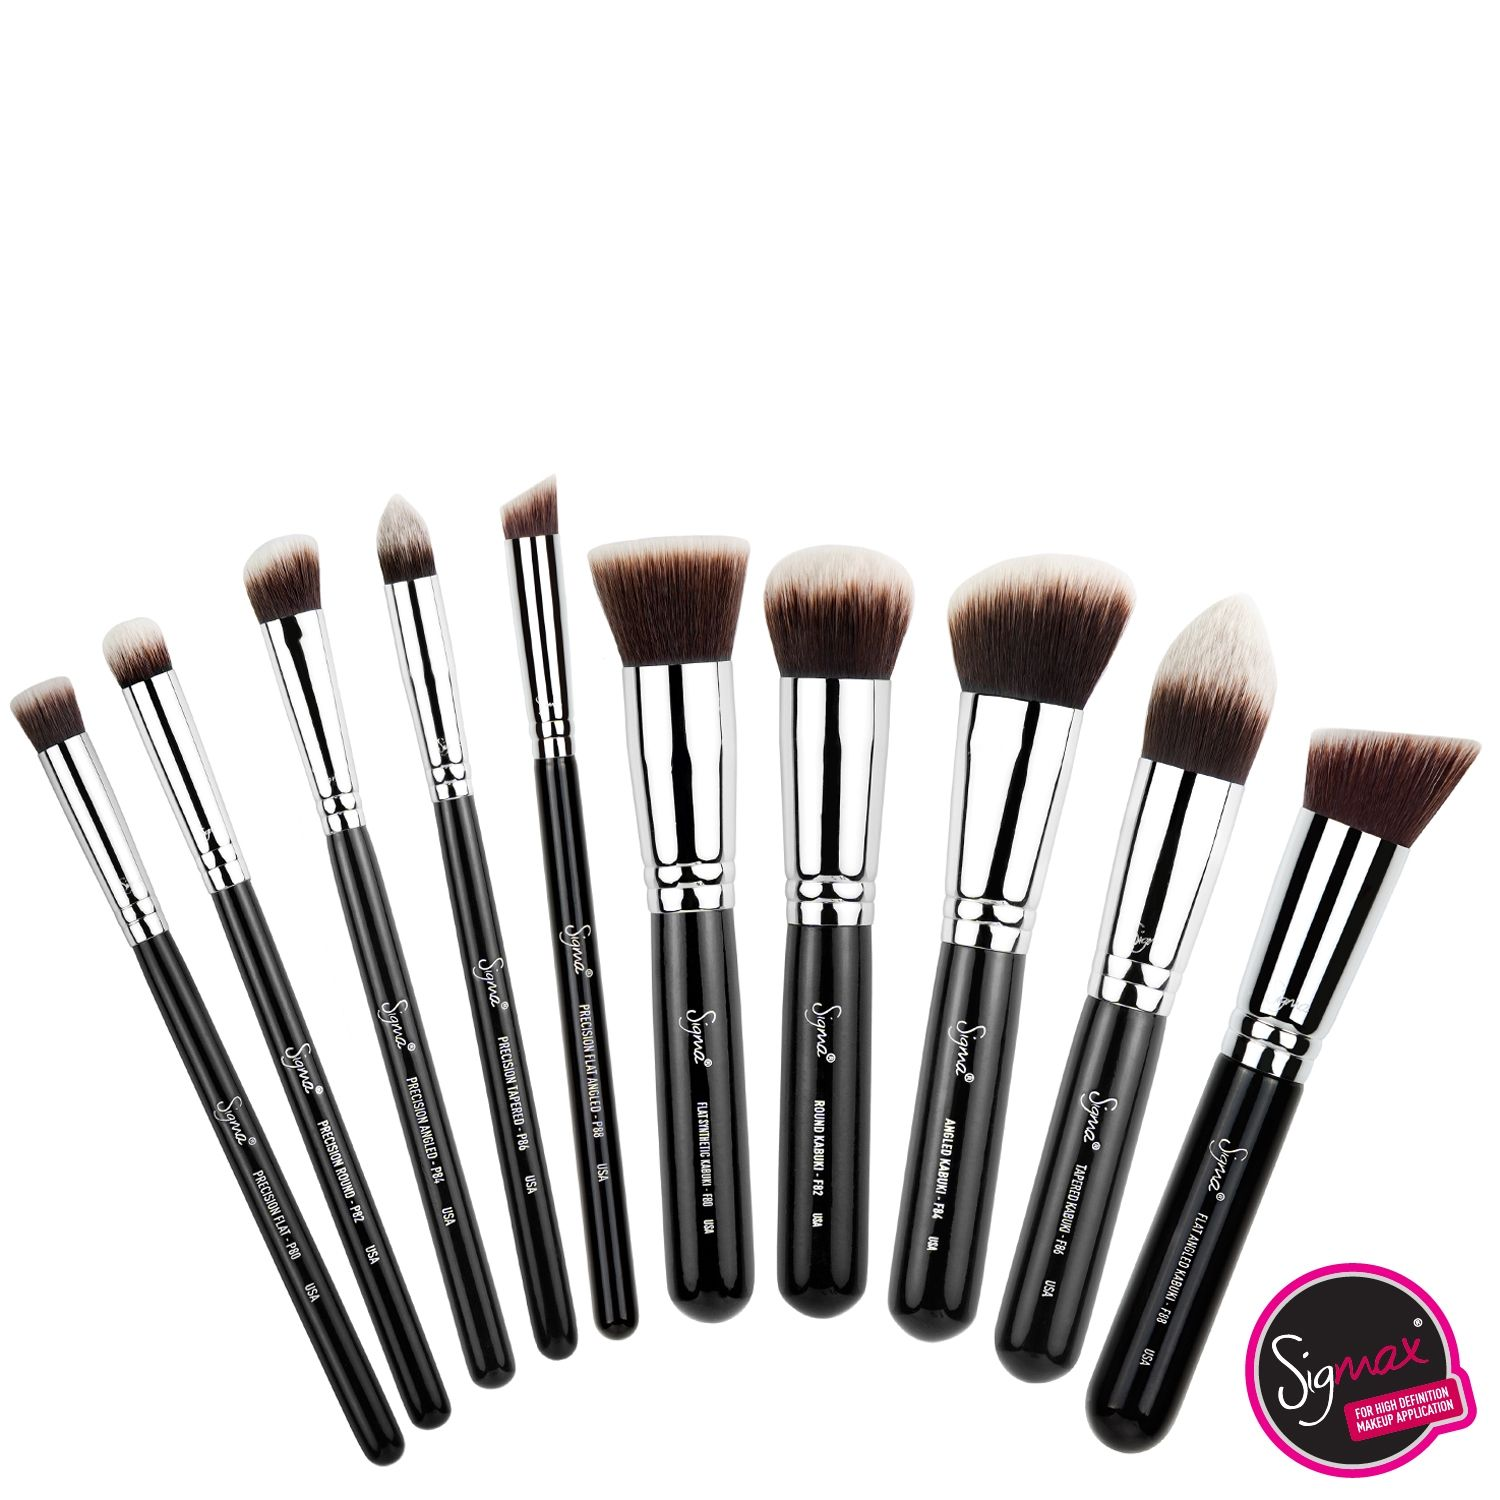 Sigma Beauty New Synthetic Essential Kit 10 Brushes